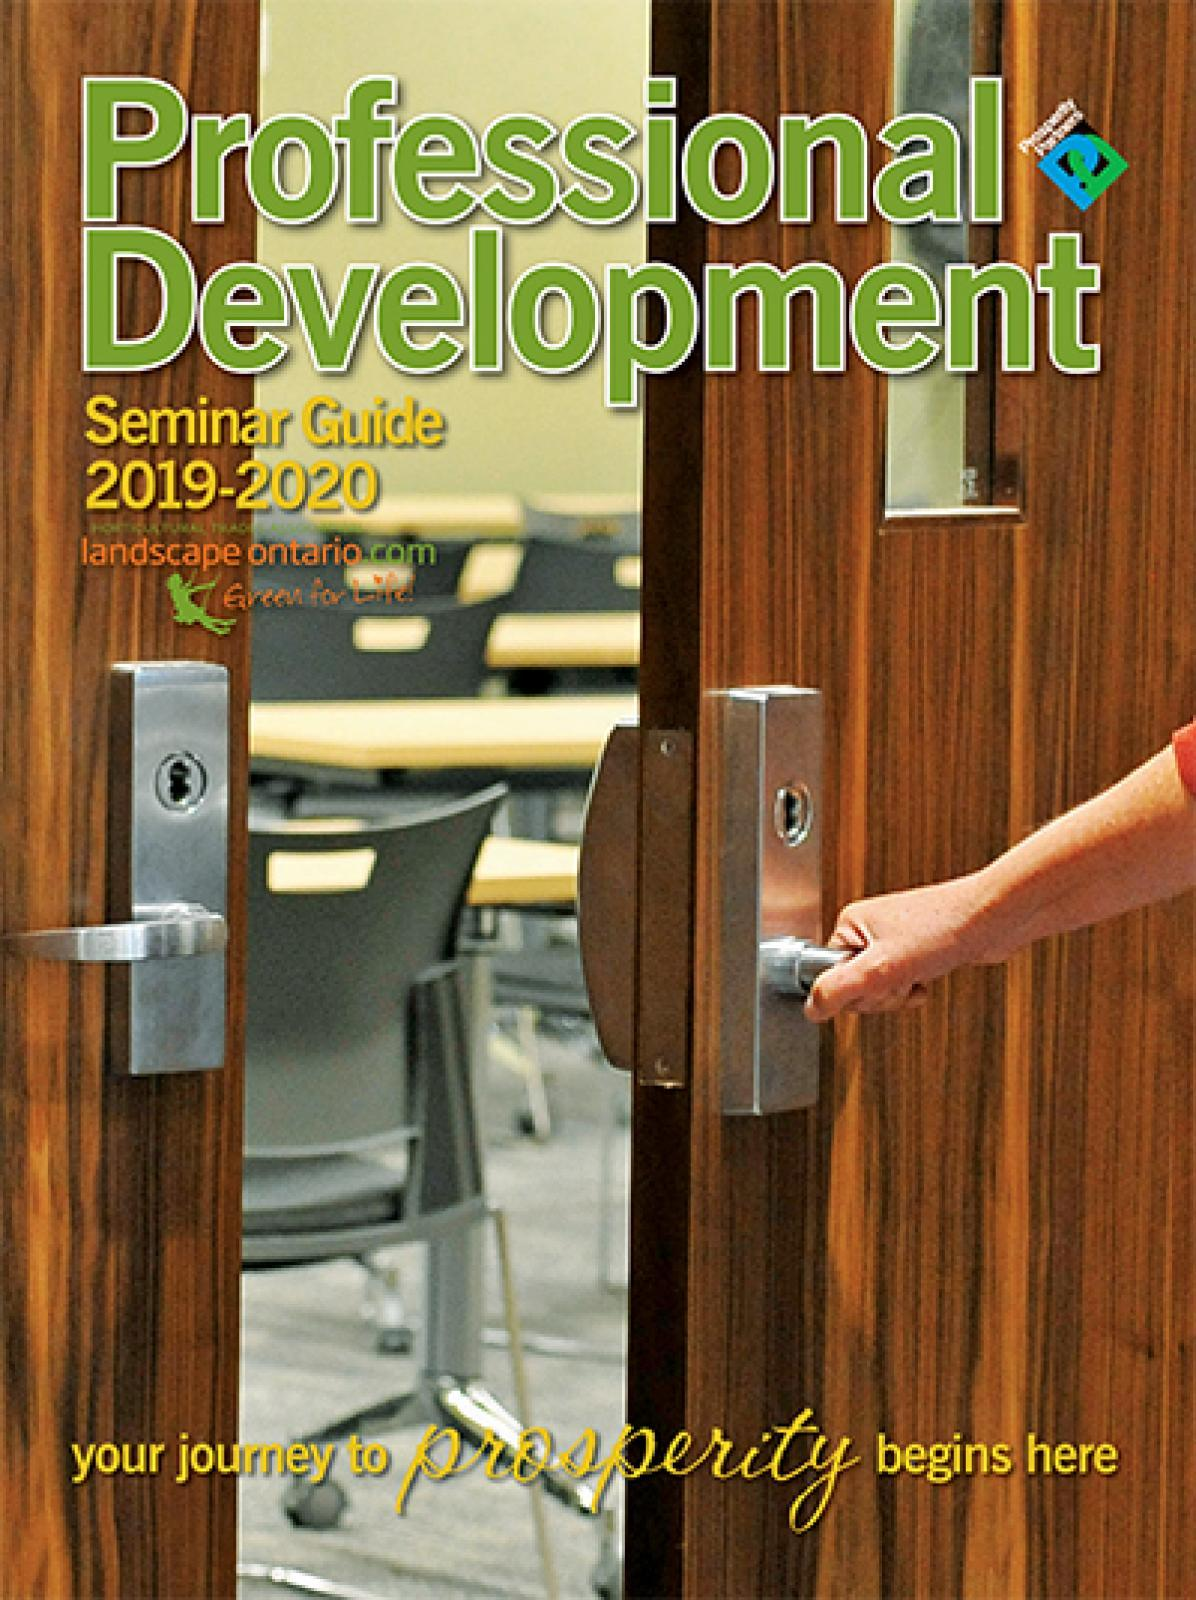 Professional Development courses final cover